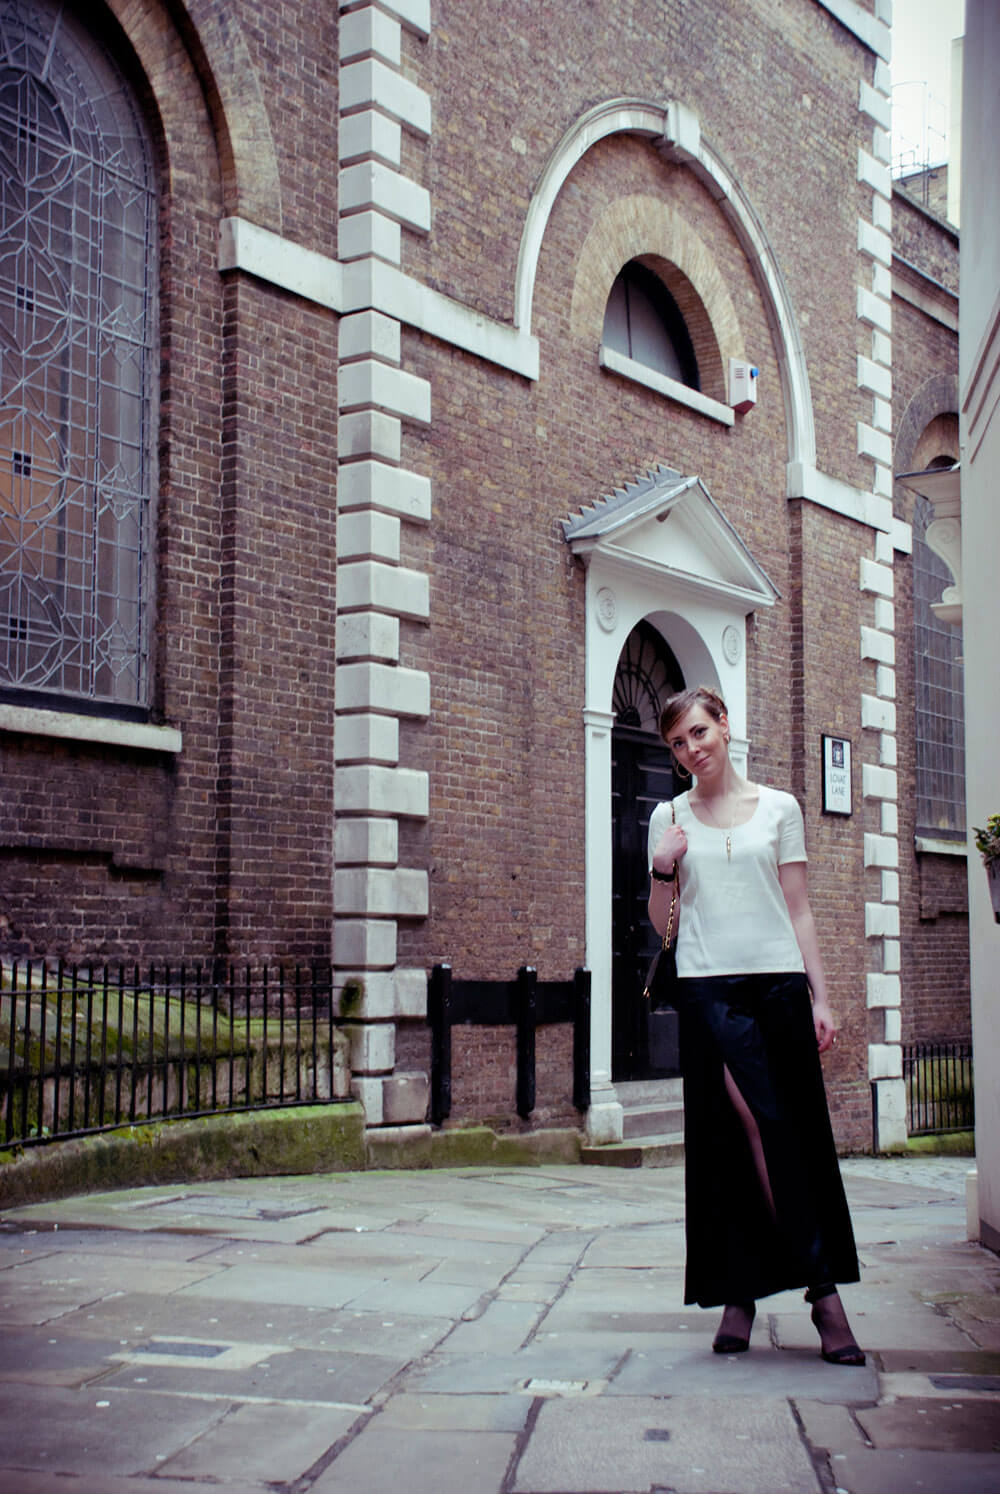 Edita in Stella McCartney trousers, Sonia Rykiel top, Chanel bag and Walter Steiger shoes, JR cuff 2